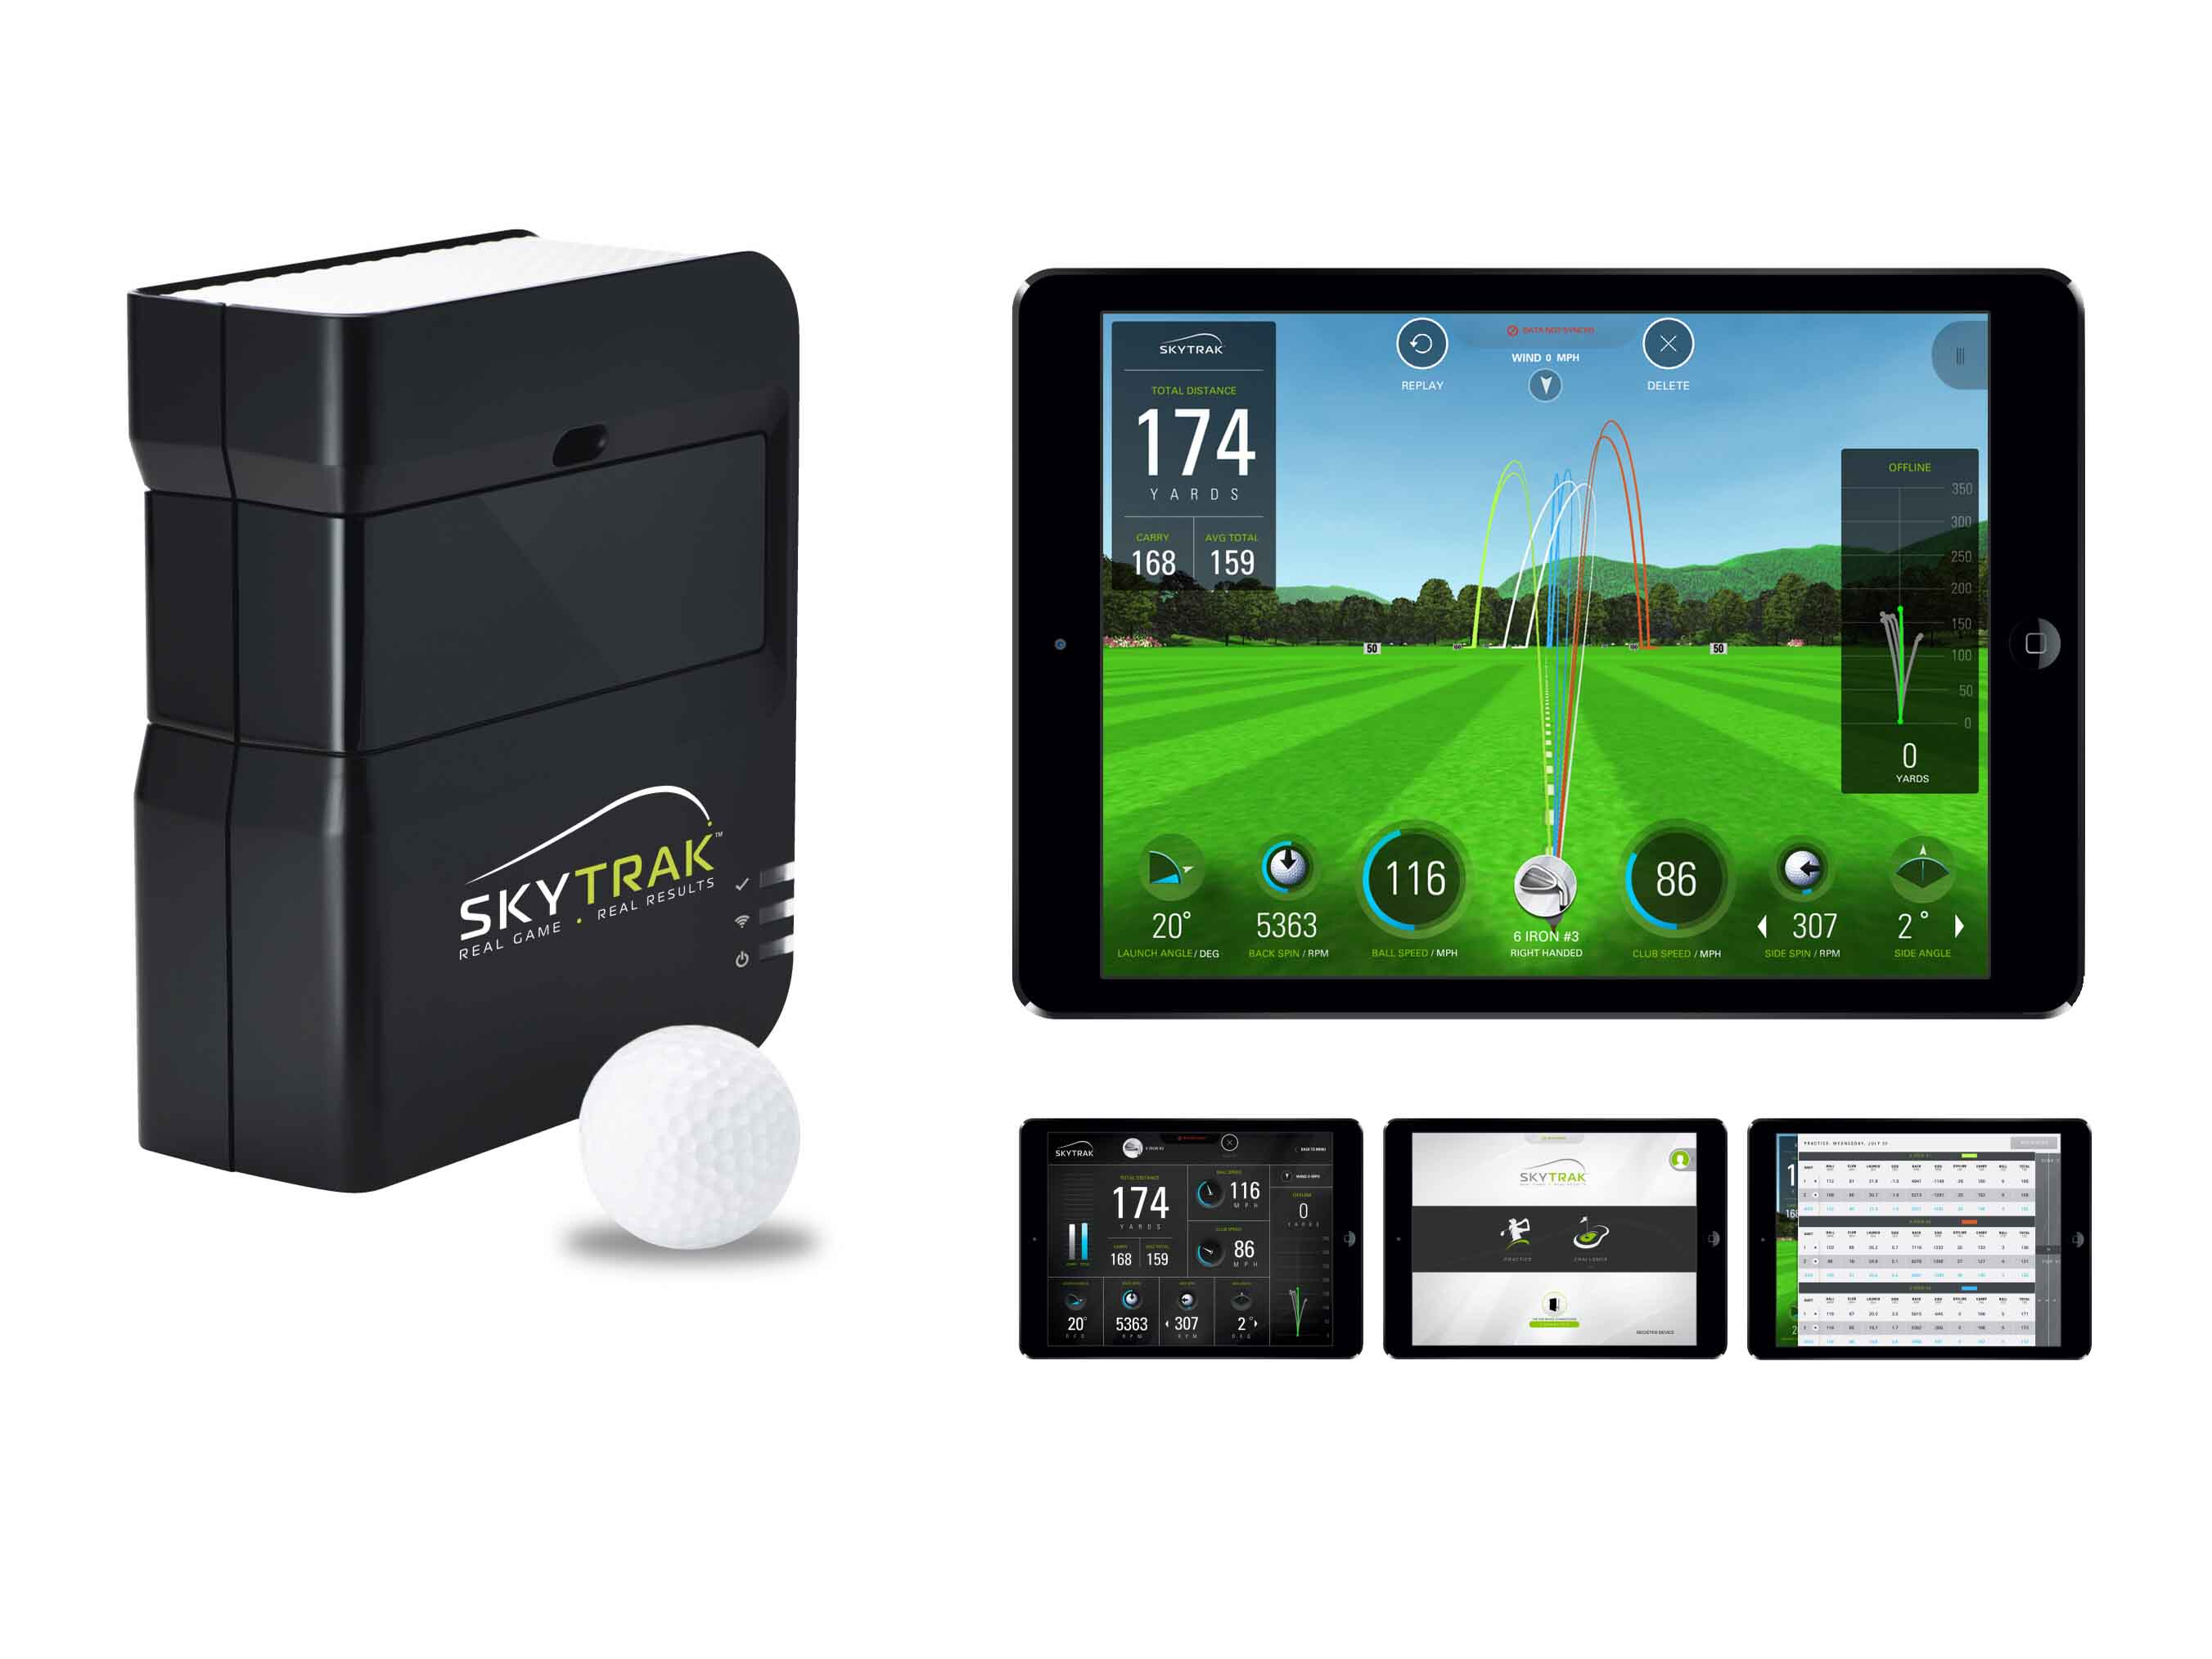 SkyTrak launch monitor review